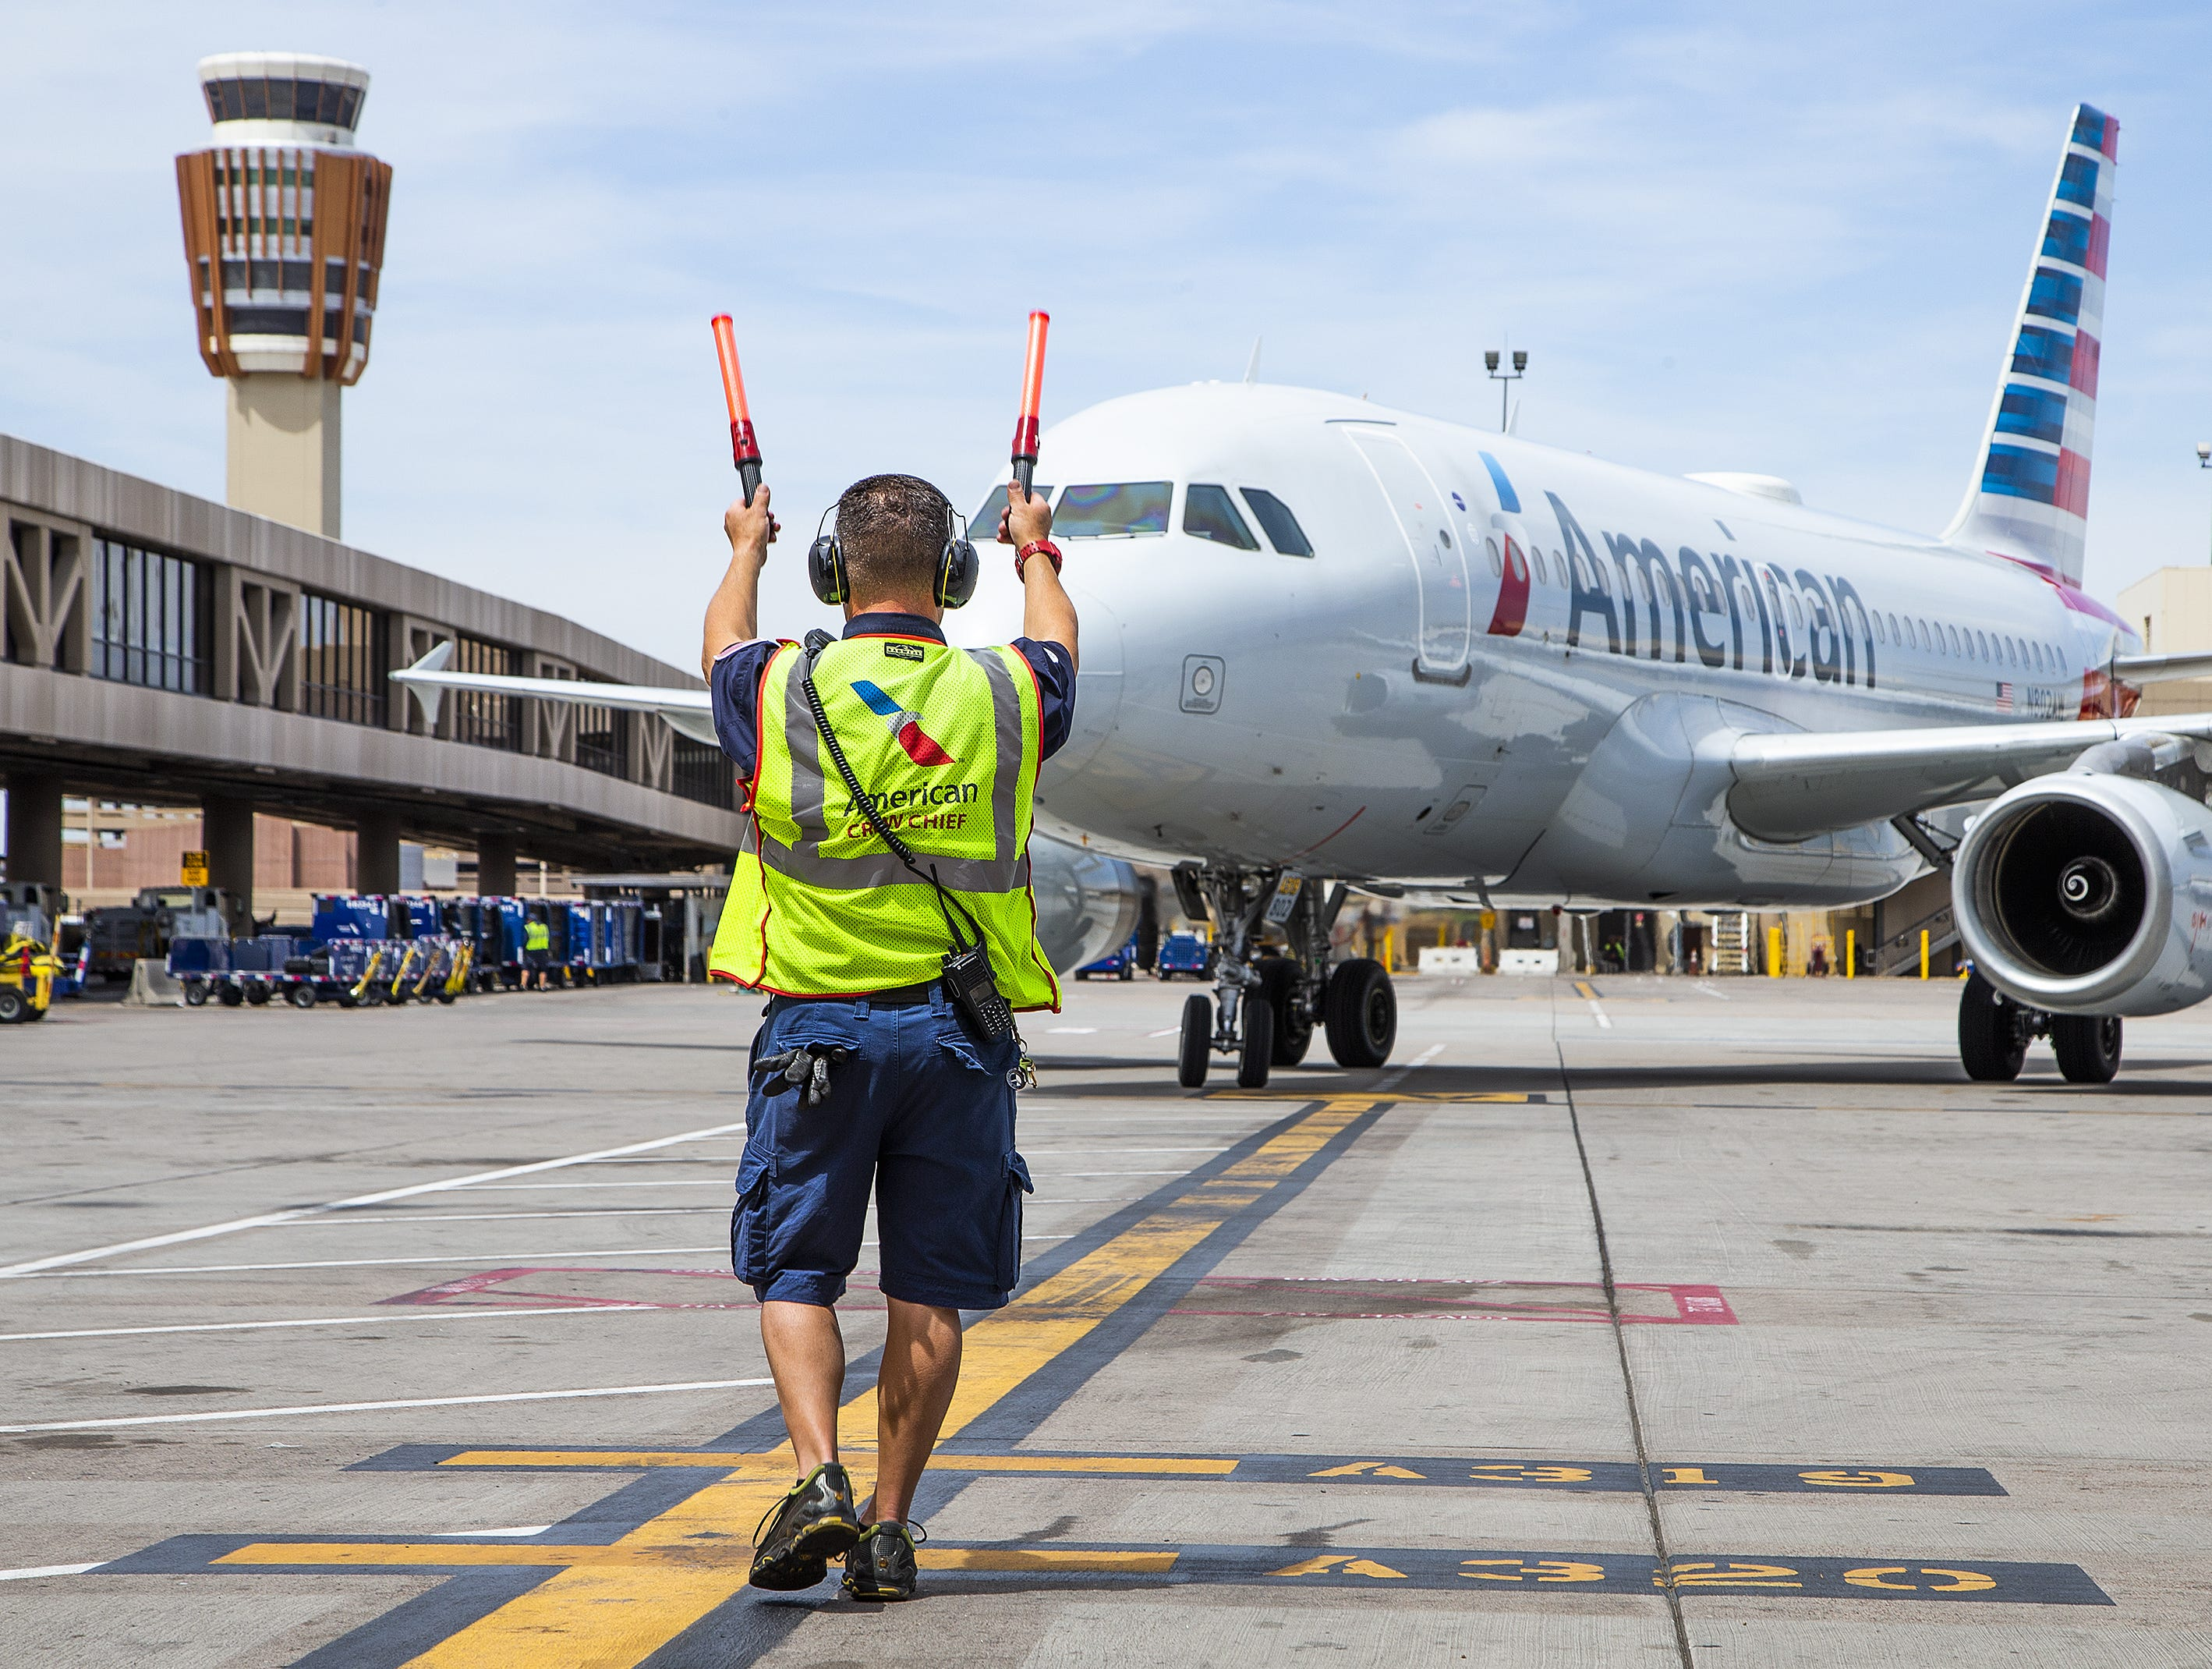 An American Airlines Airbus A-319 arrives at Sky Harbor International Airport after flying in from Tucson, Friday, May 10, 2019.  The flight would be unloaded, serviced, cleaned, reloaded and reboarded for a flight to Austin within 30 minutes.